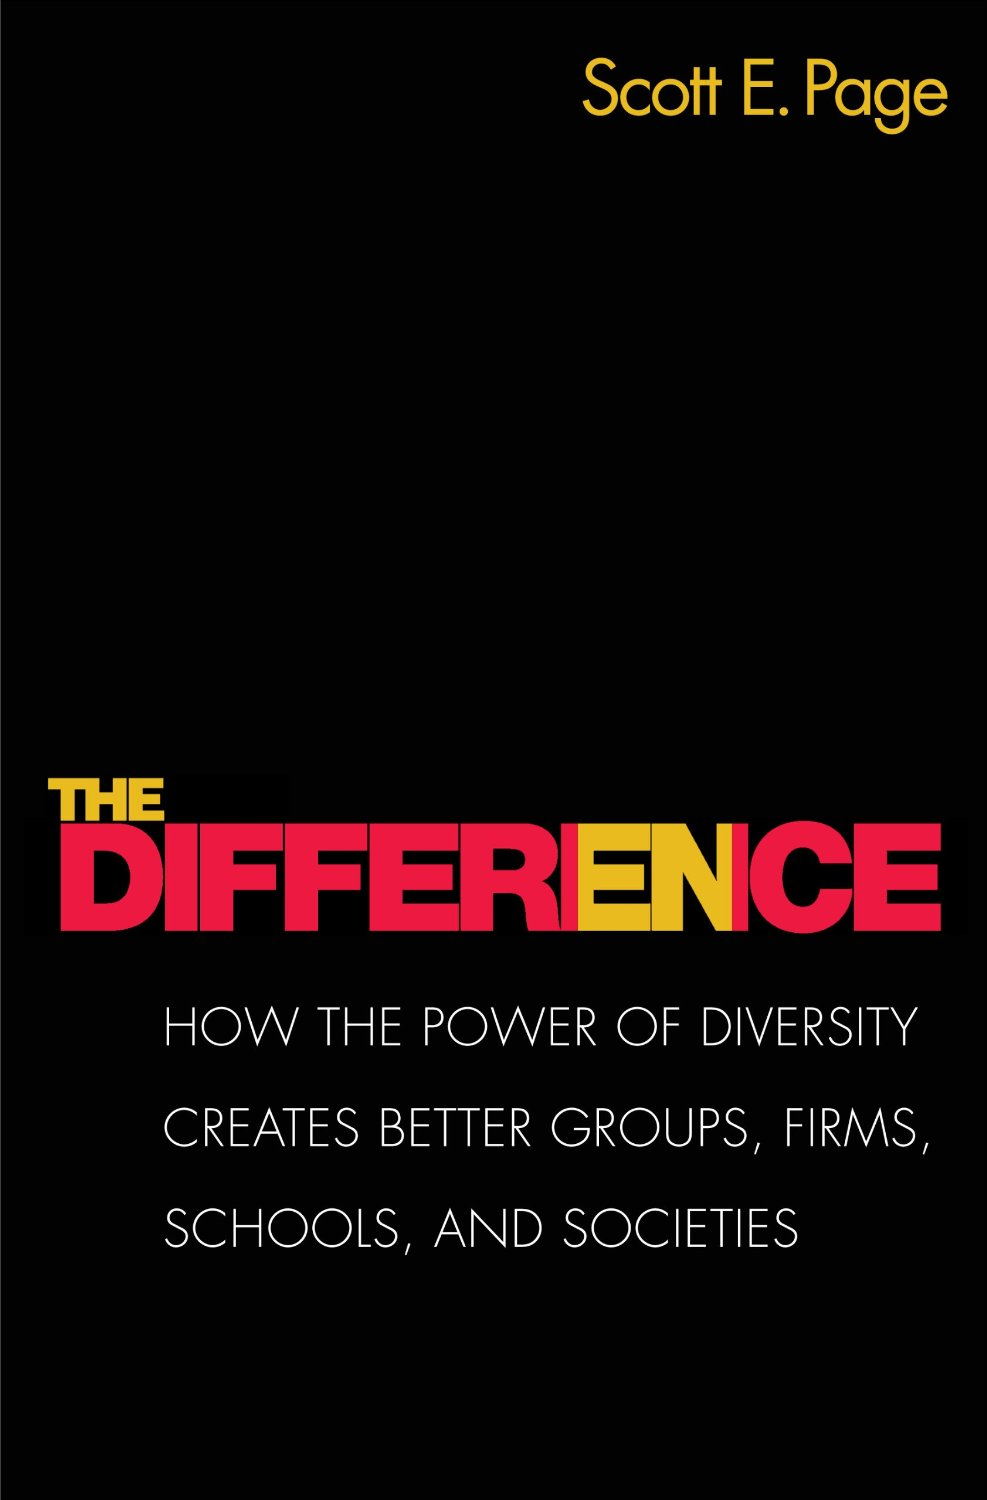 The Cover Page of The Difference: How the Power of Diversity Creates Better Groups, Firms, Schools and Societies.  Predominantly black, the title appears in bold colors, red and yellow, in the lower left corner.